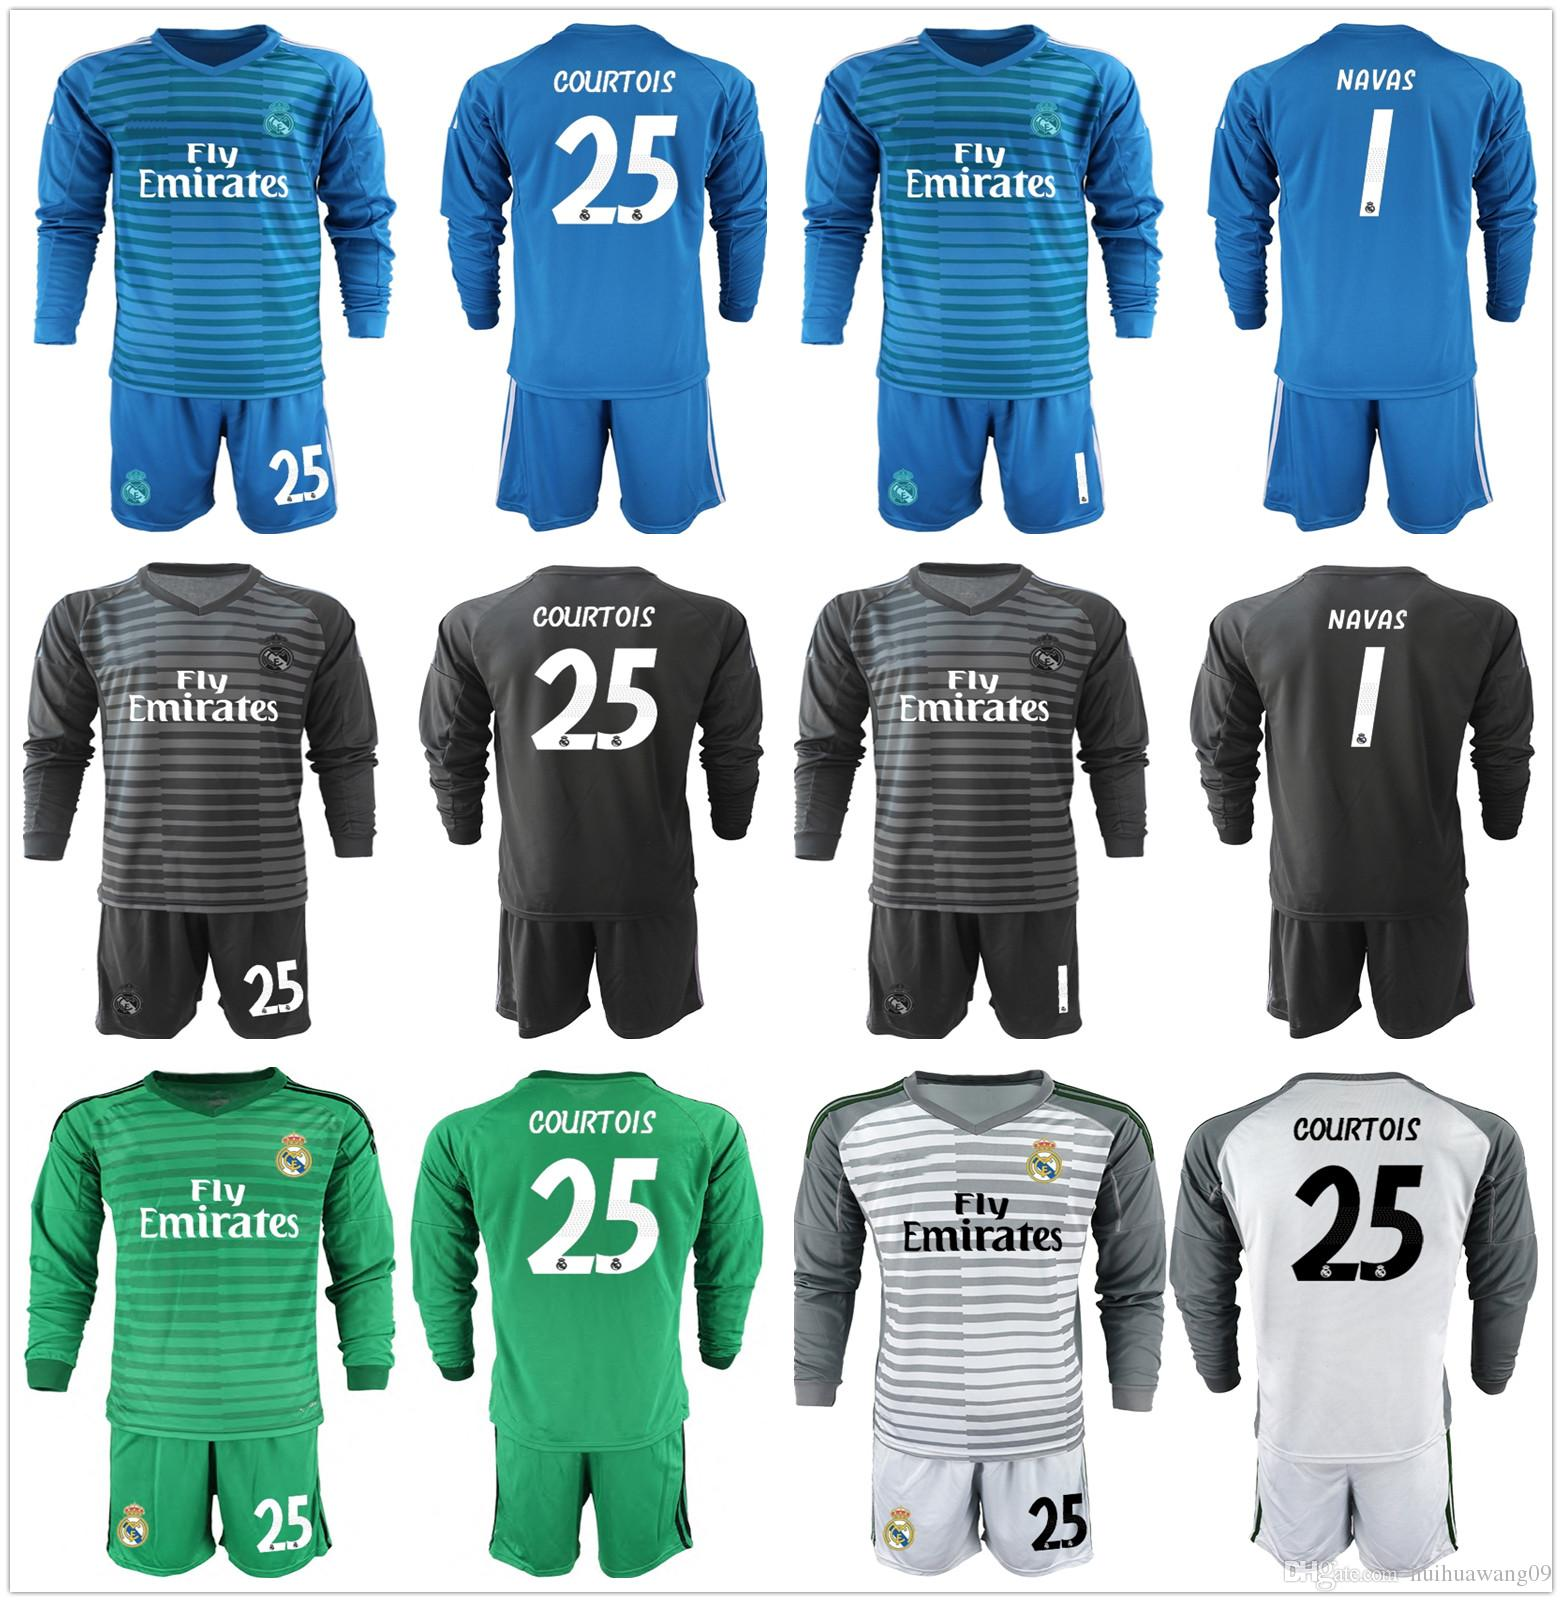 official photos 74391 f0411 2018 2019 Long Sleeve Real Madrid Soccer Set Goalkeepe Kit Keylor Navas 25  Courtois Goalkeeper Madrid Jersey Bale Shirt Football Uniform Men